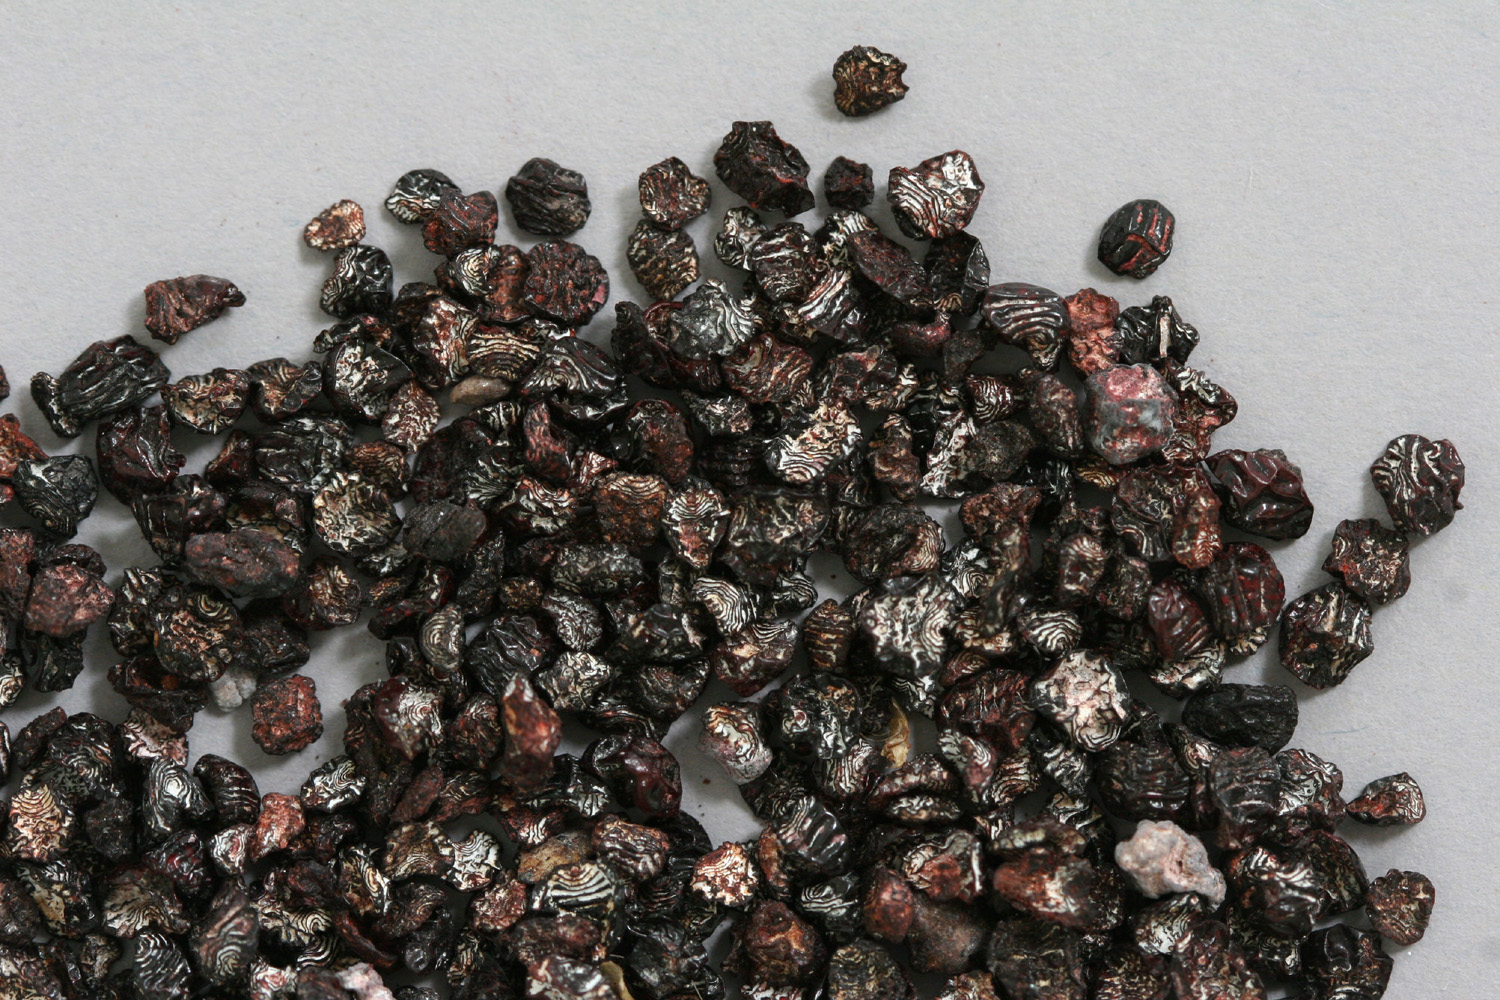 Dried cochineal insects. Photo: E. Phipps